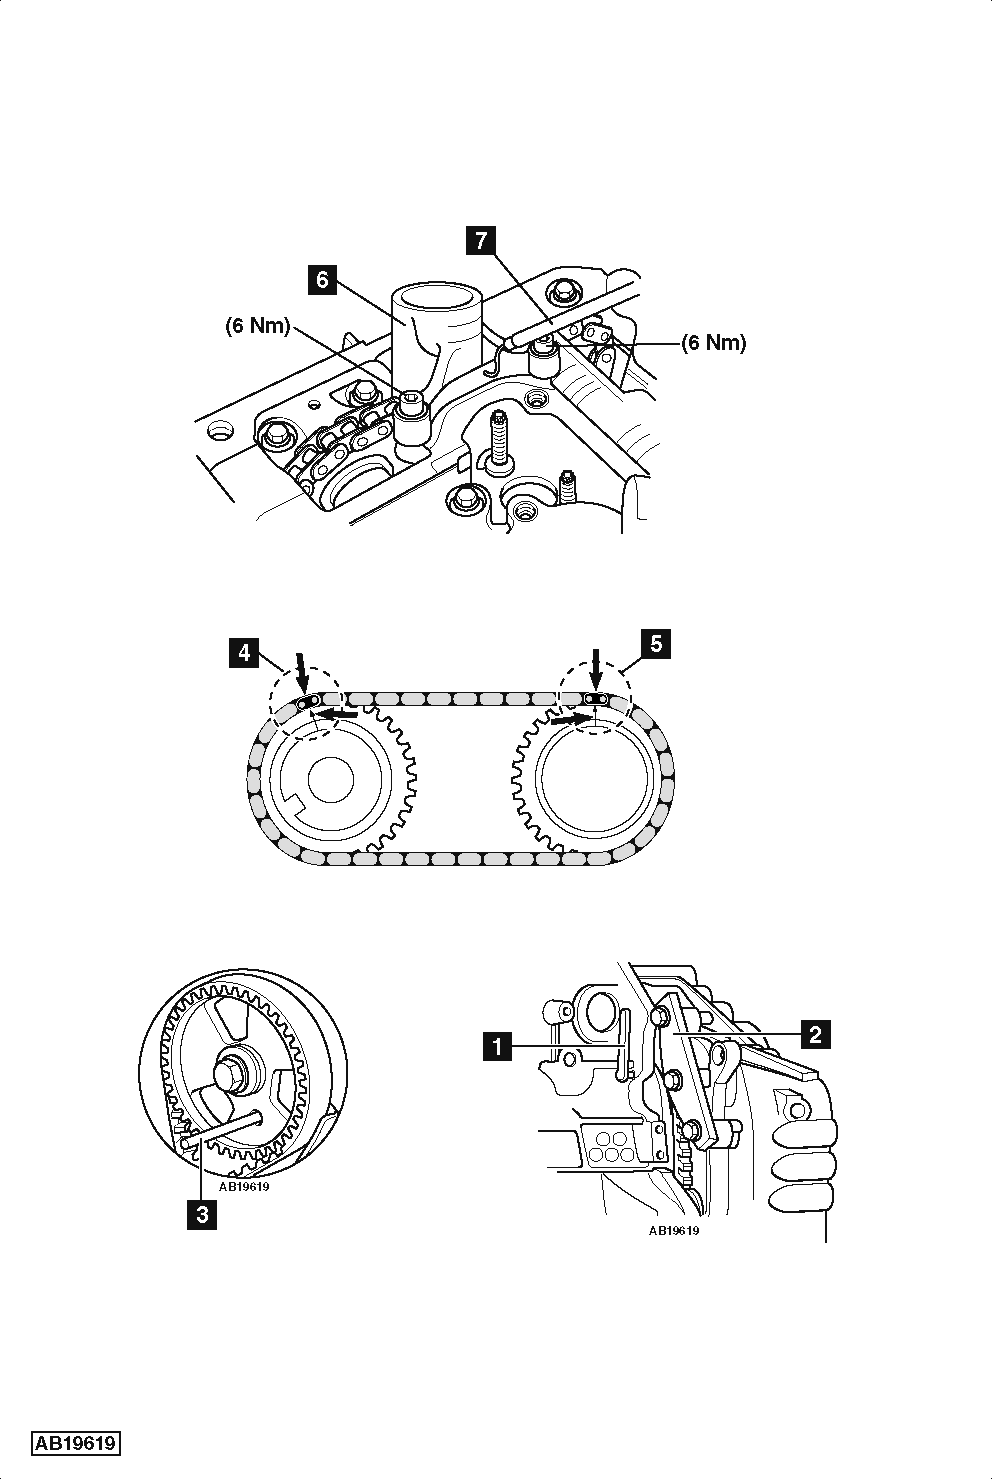 Replace timing chain on Ford C-MAX 2.0 TDCi 2007-2010